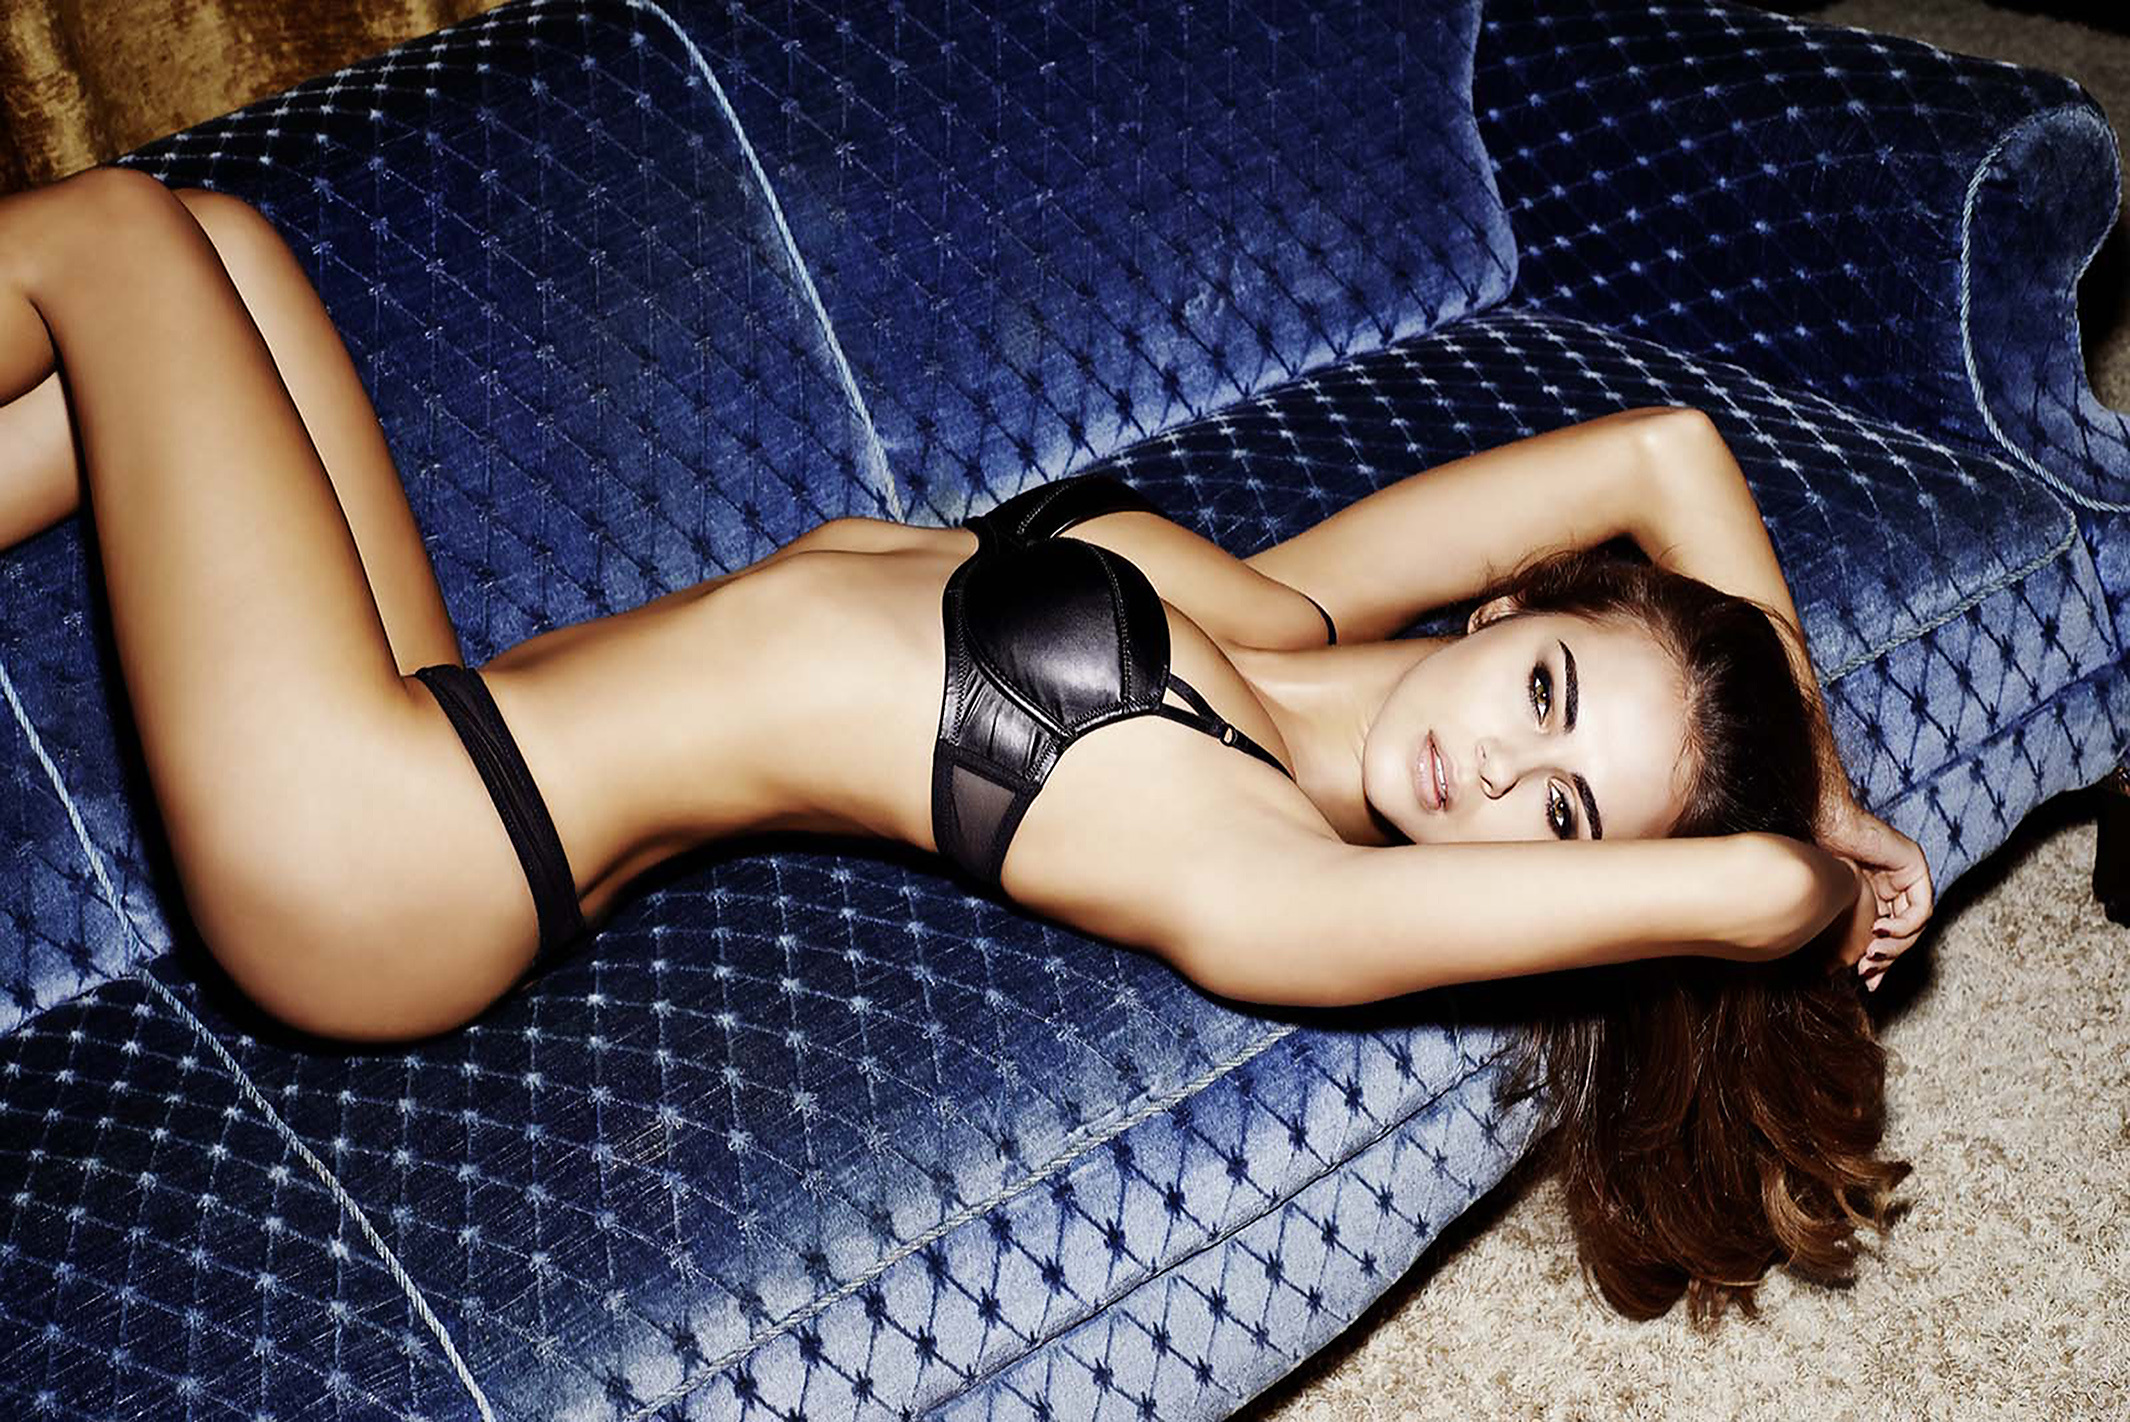 Xenia Deli Hot Bra Panty Couch Pose WP - Xenia Deli Hot Bra & Panty Couch Pose WP